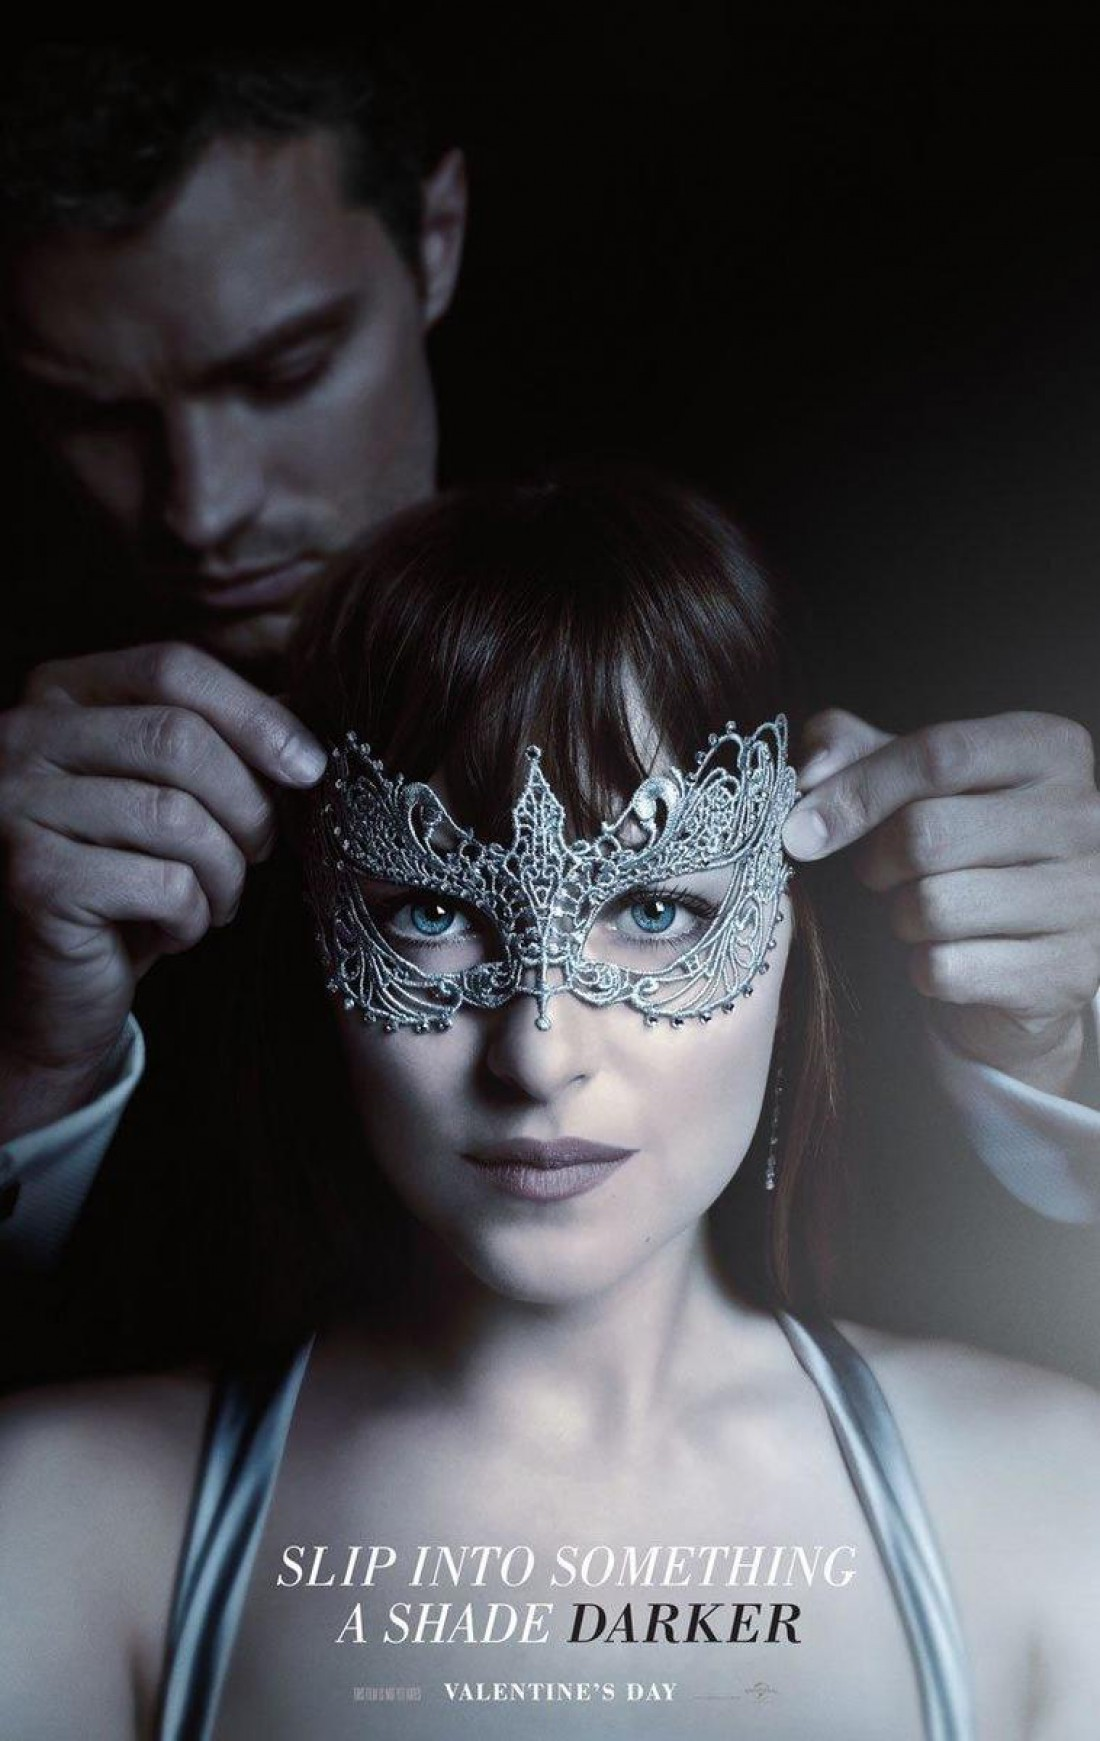 Twitter Fifty Shades Darker